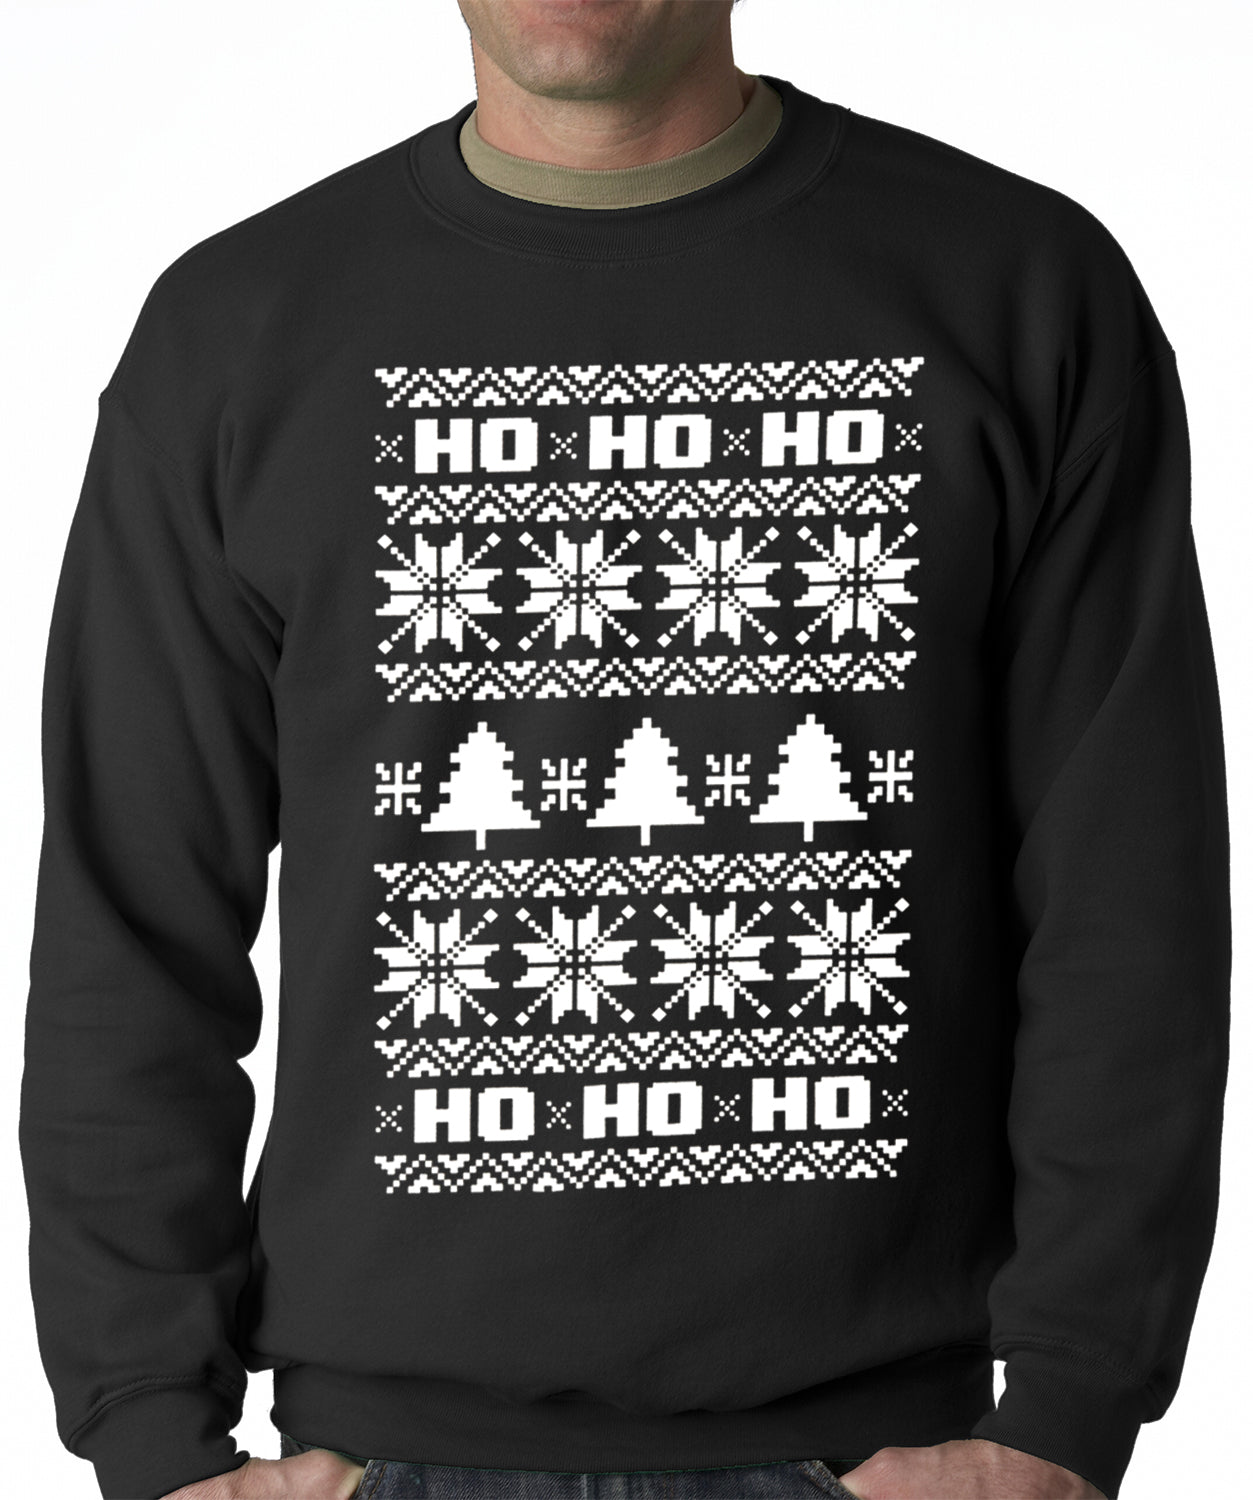 Ugly Christmas Sweater - Snowflake HO HO HO Adult Crewneck